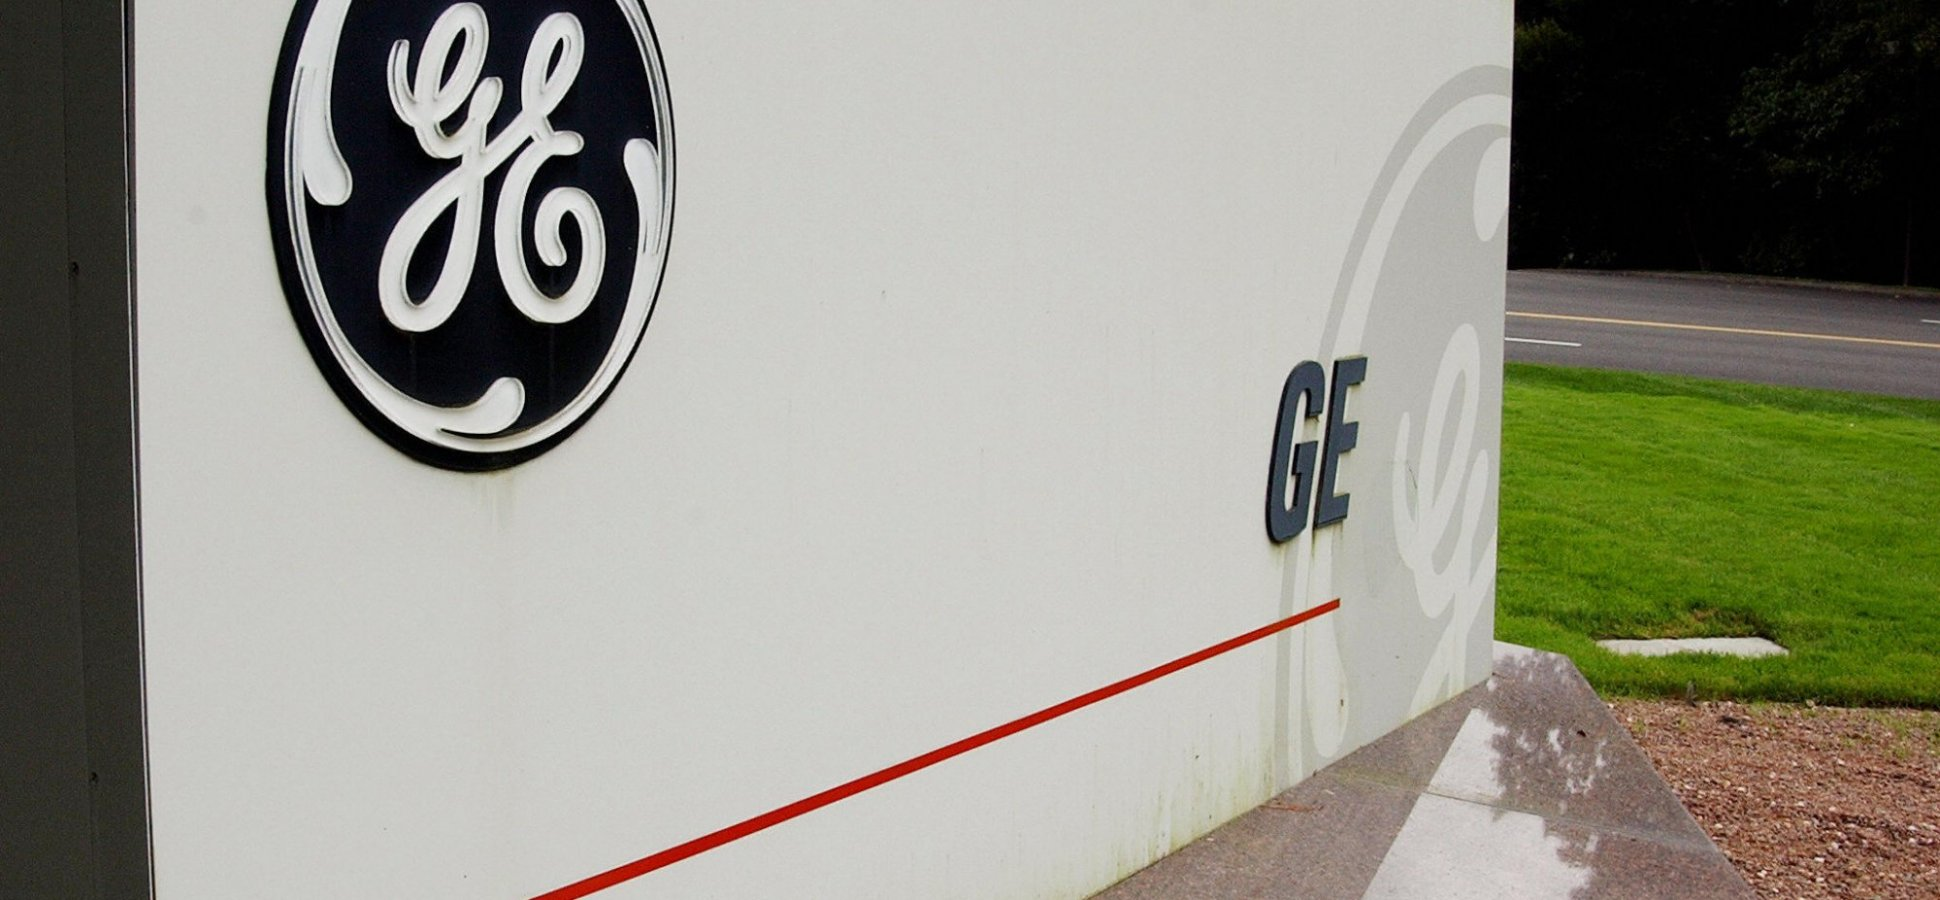 Bernie Madoff's Whistleblower Targets GE. Do You Have Confidence in Its Financial Statements?